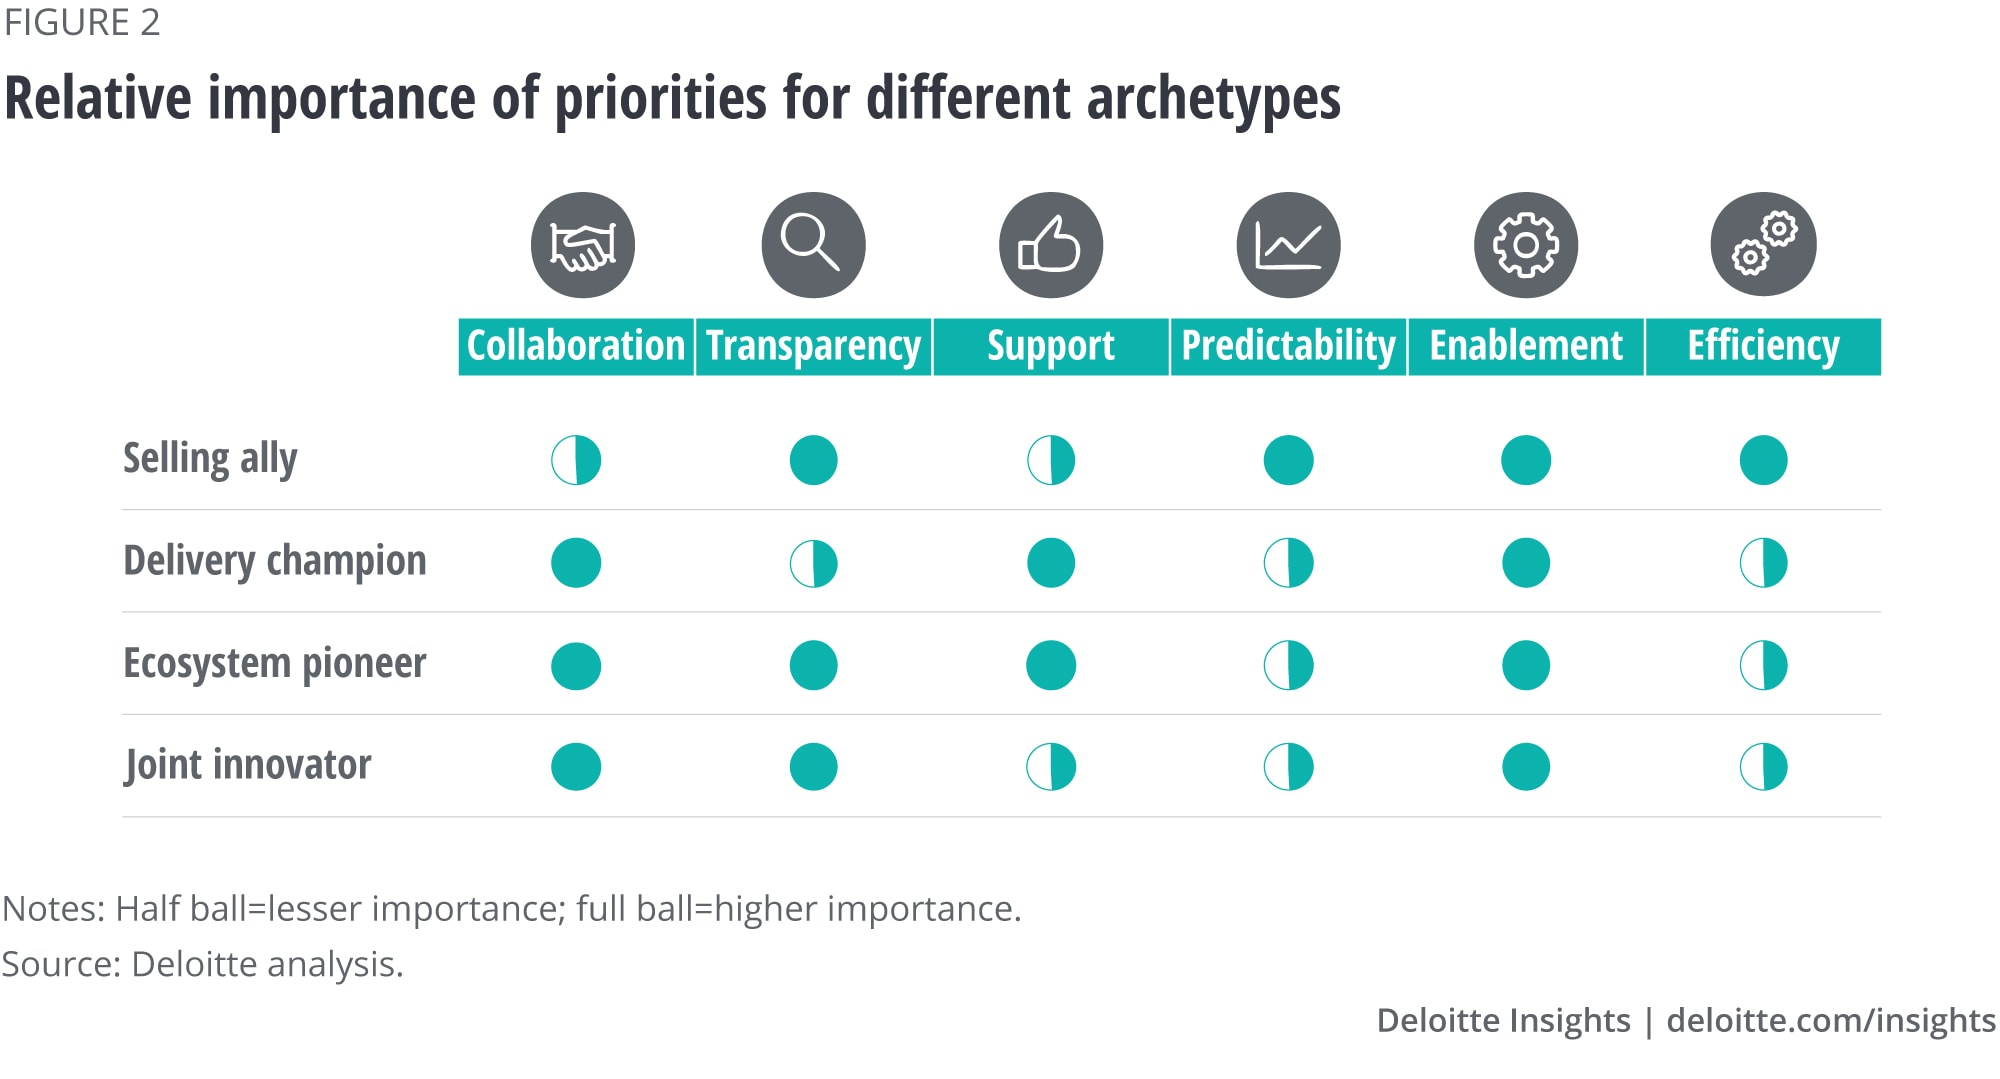 Relative importance of priorities for different archetypes